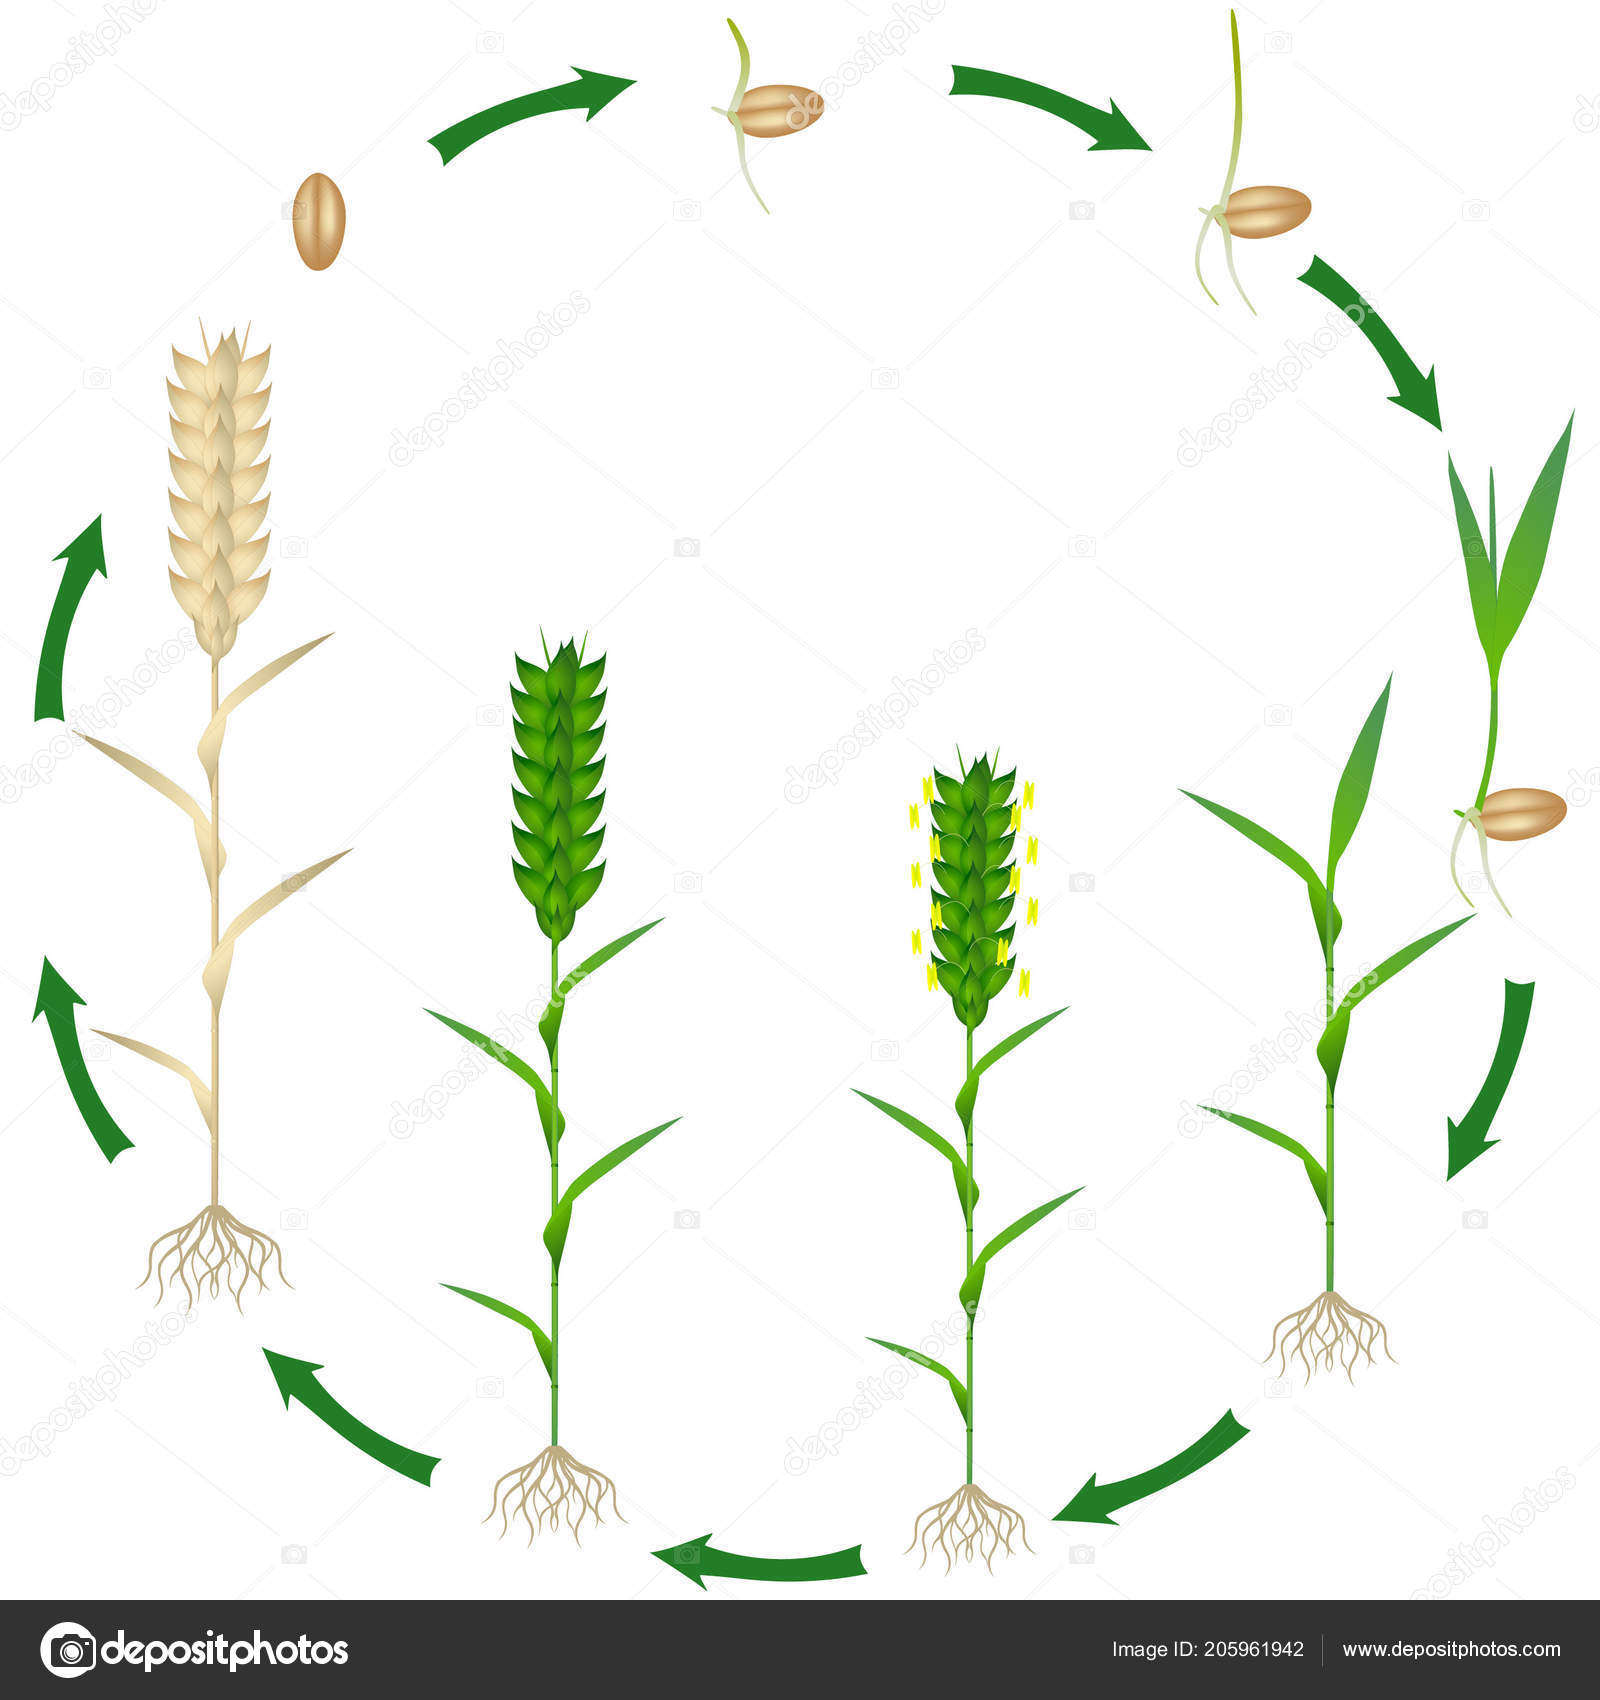 life cycle wheat plant plant white background stock vector